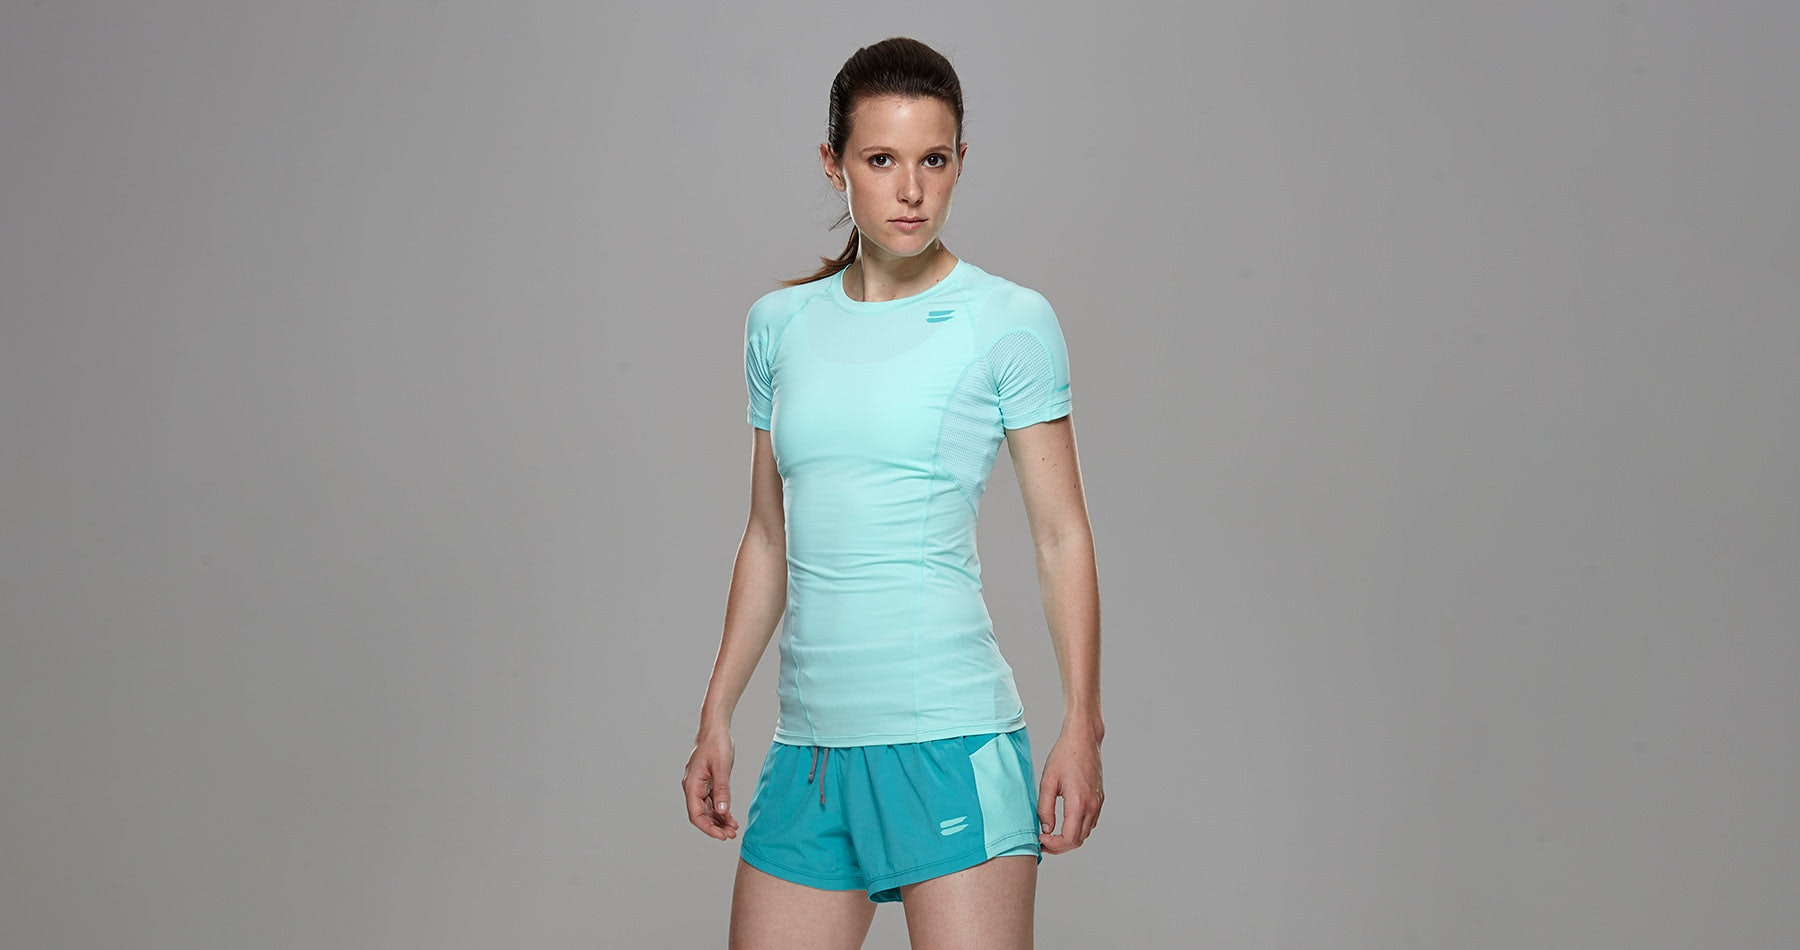 Tribesports Core Women's Short Sleeve Top Turquoise 8